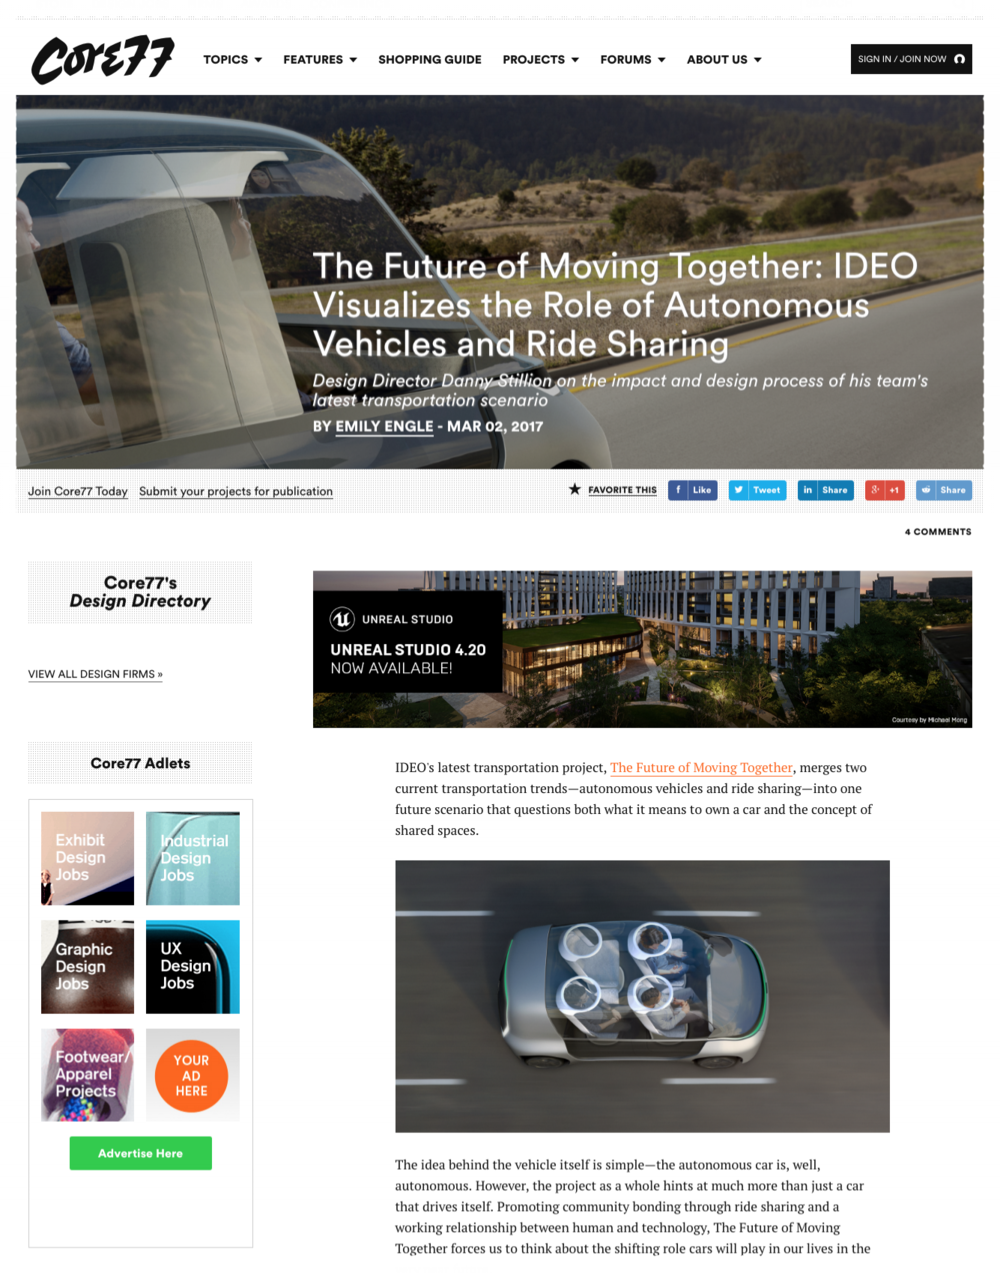 screencapture-core77-posts-61933-The-Future-of-Moving-Together-IDEO-Visualizes-the-Role-of-Autonomous-Vehicles-and-Ride-Sharing-2018-09-23-14_42_08.png